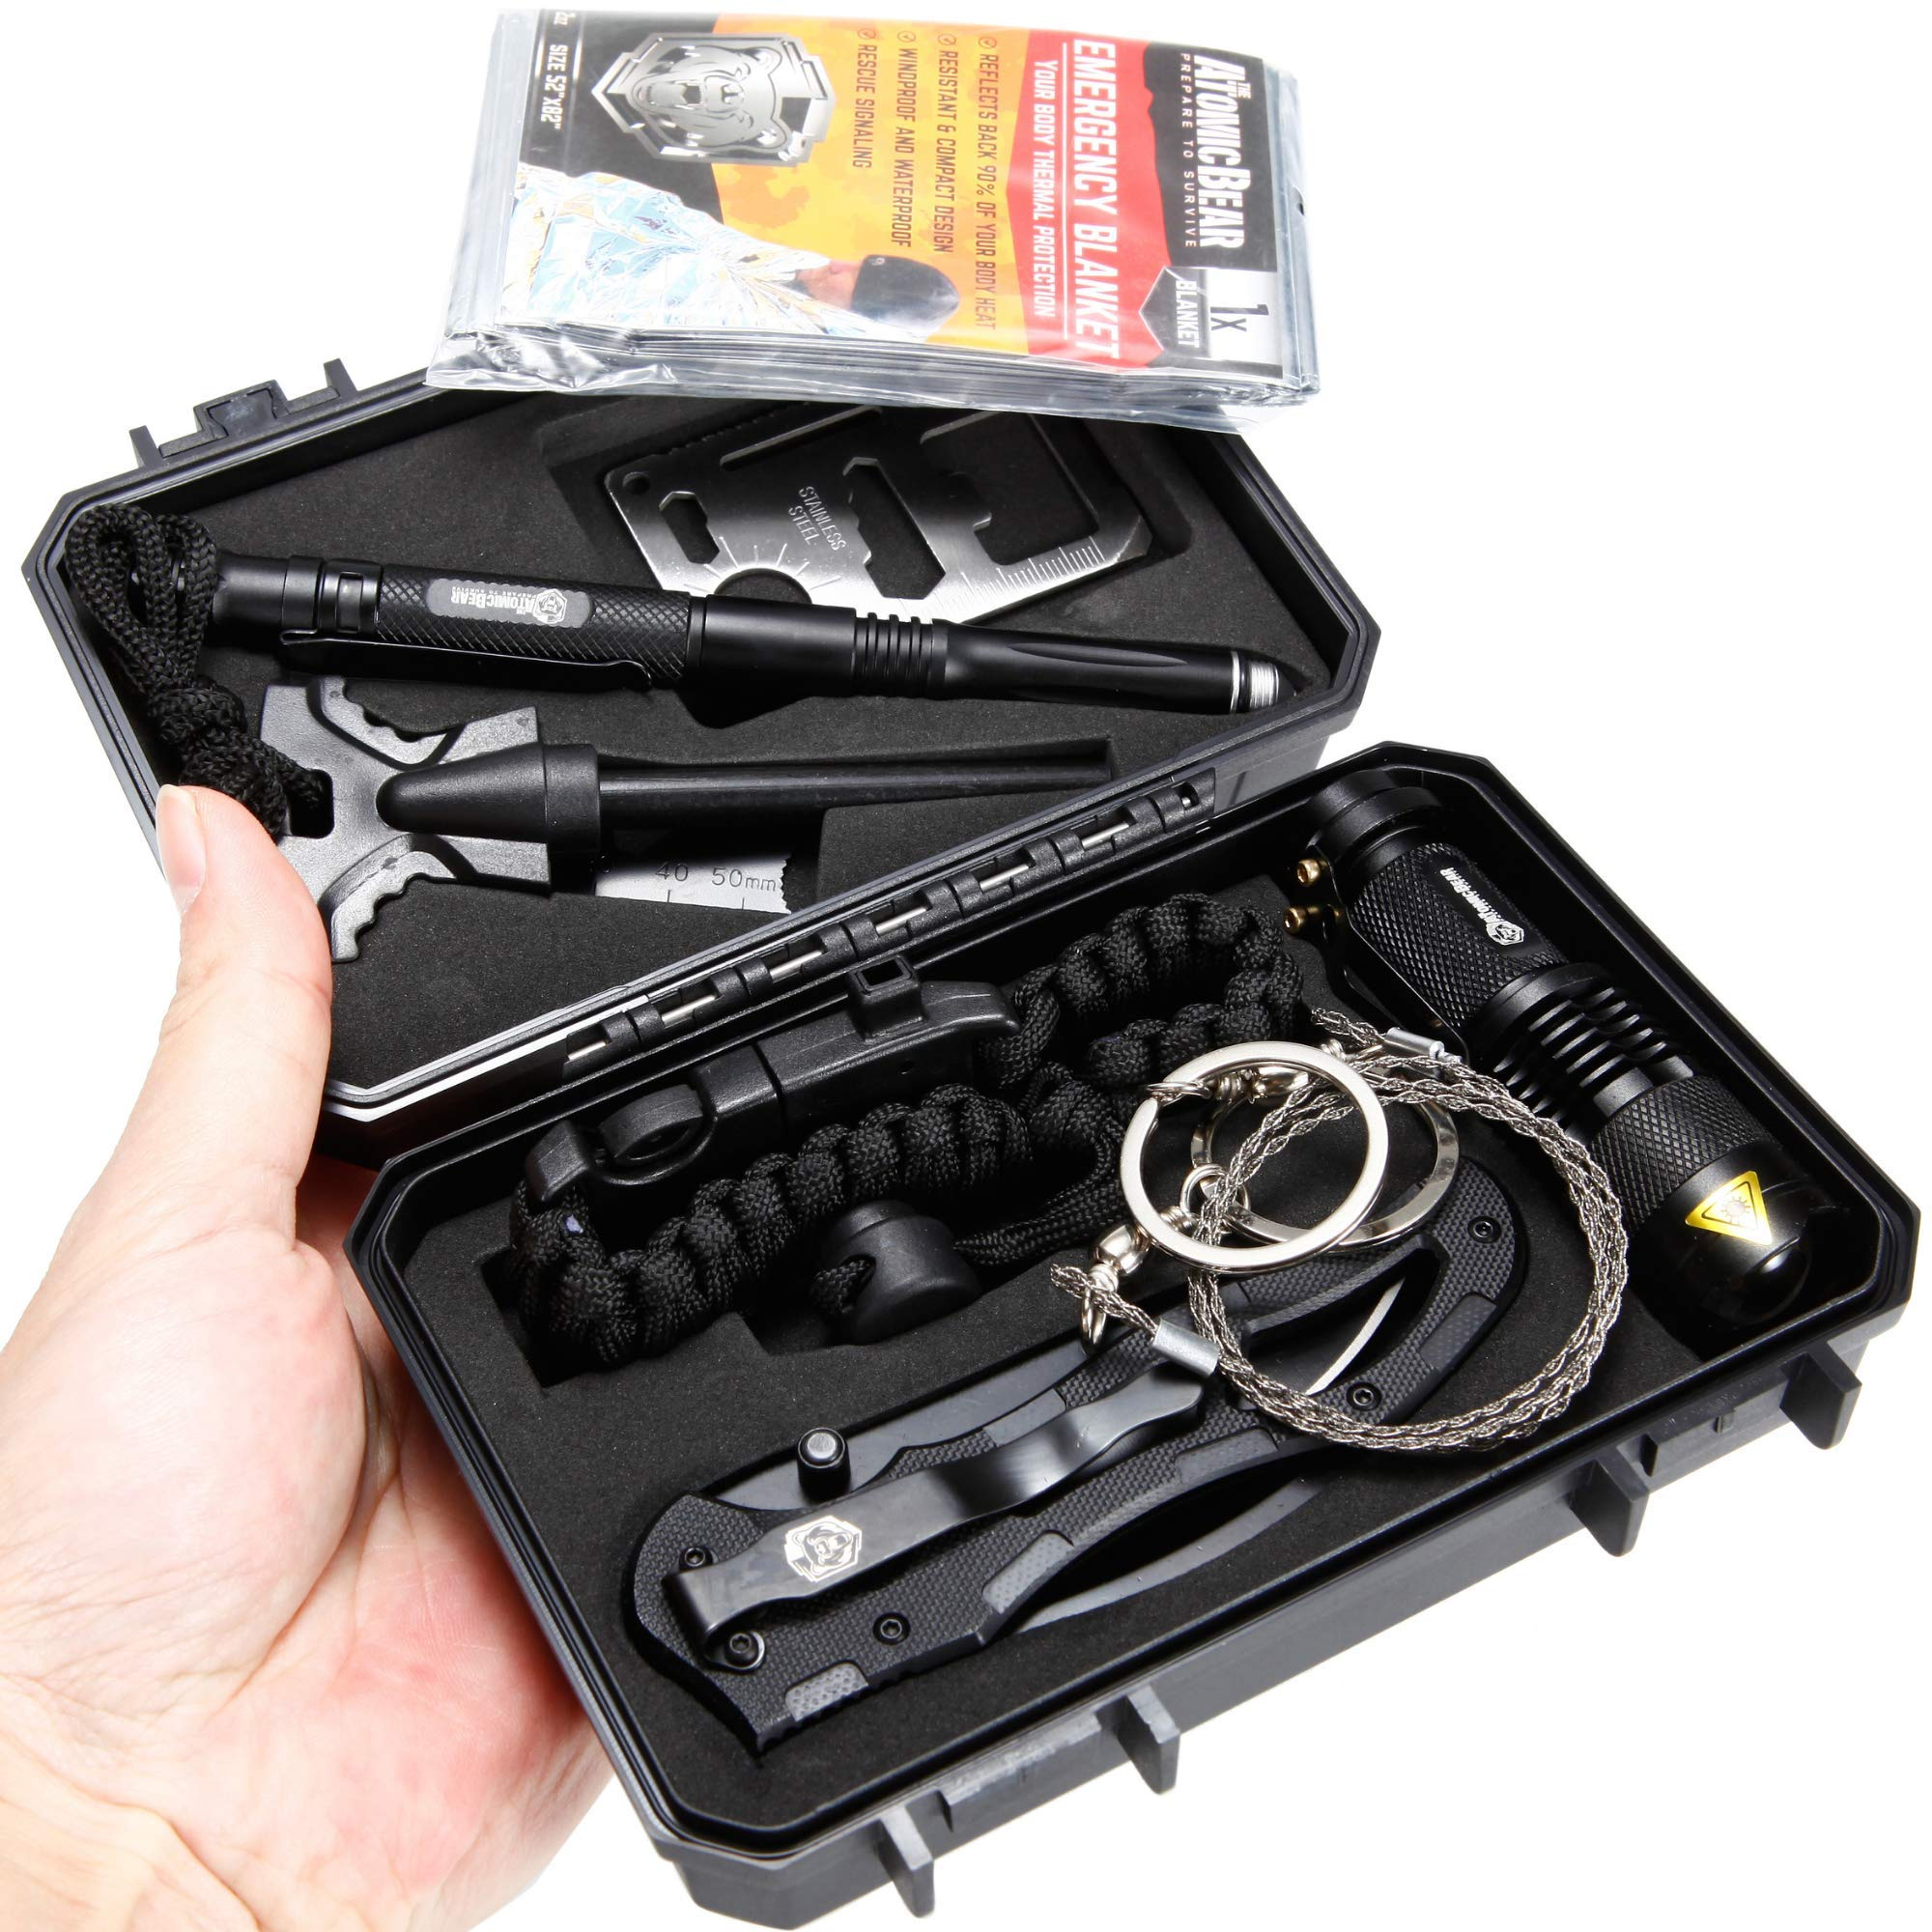 Survival Kit for Emergency and EDC - Premium Survival Gear from Atomic Bear: Tactical Knife, MTP6 Pen, Tactical Flashlight, Adjustable Survival Bracelet, Fire Starter, Multi Tool Card, Wire Saw by The Atomic Bear